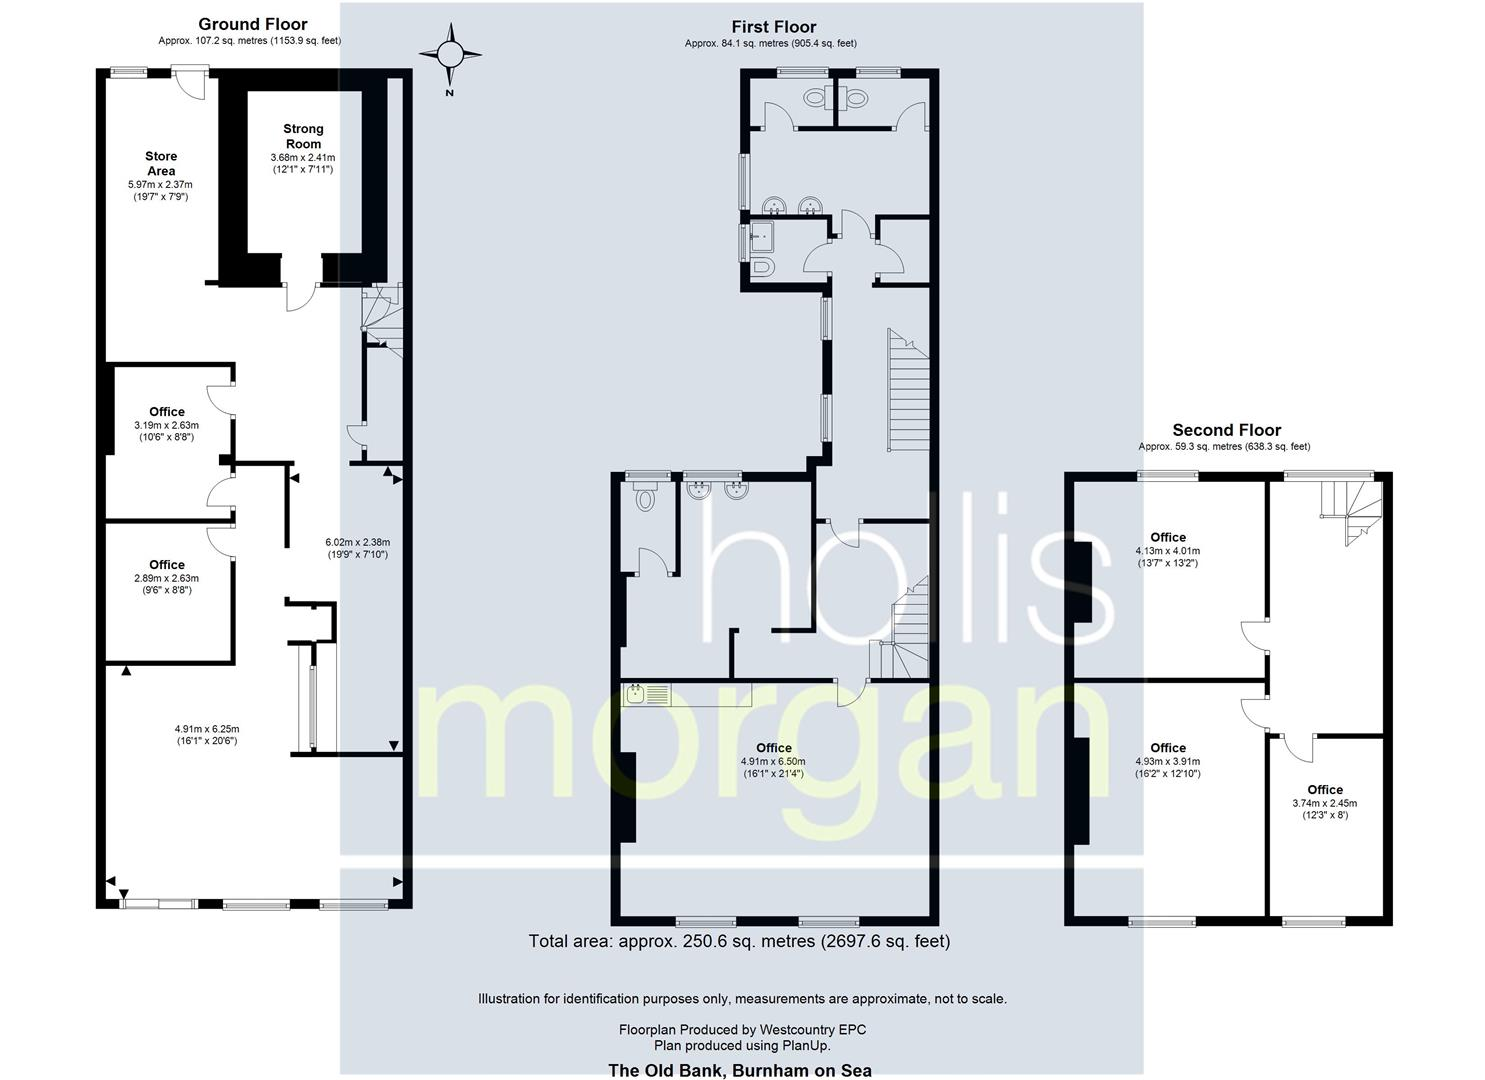 Floorplans For RESI DEVELOPMENT OPPORTUNITY - BURNHAM